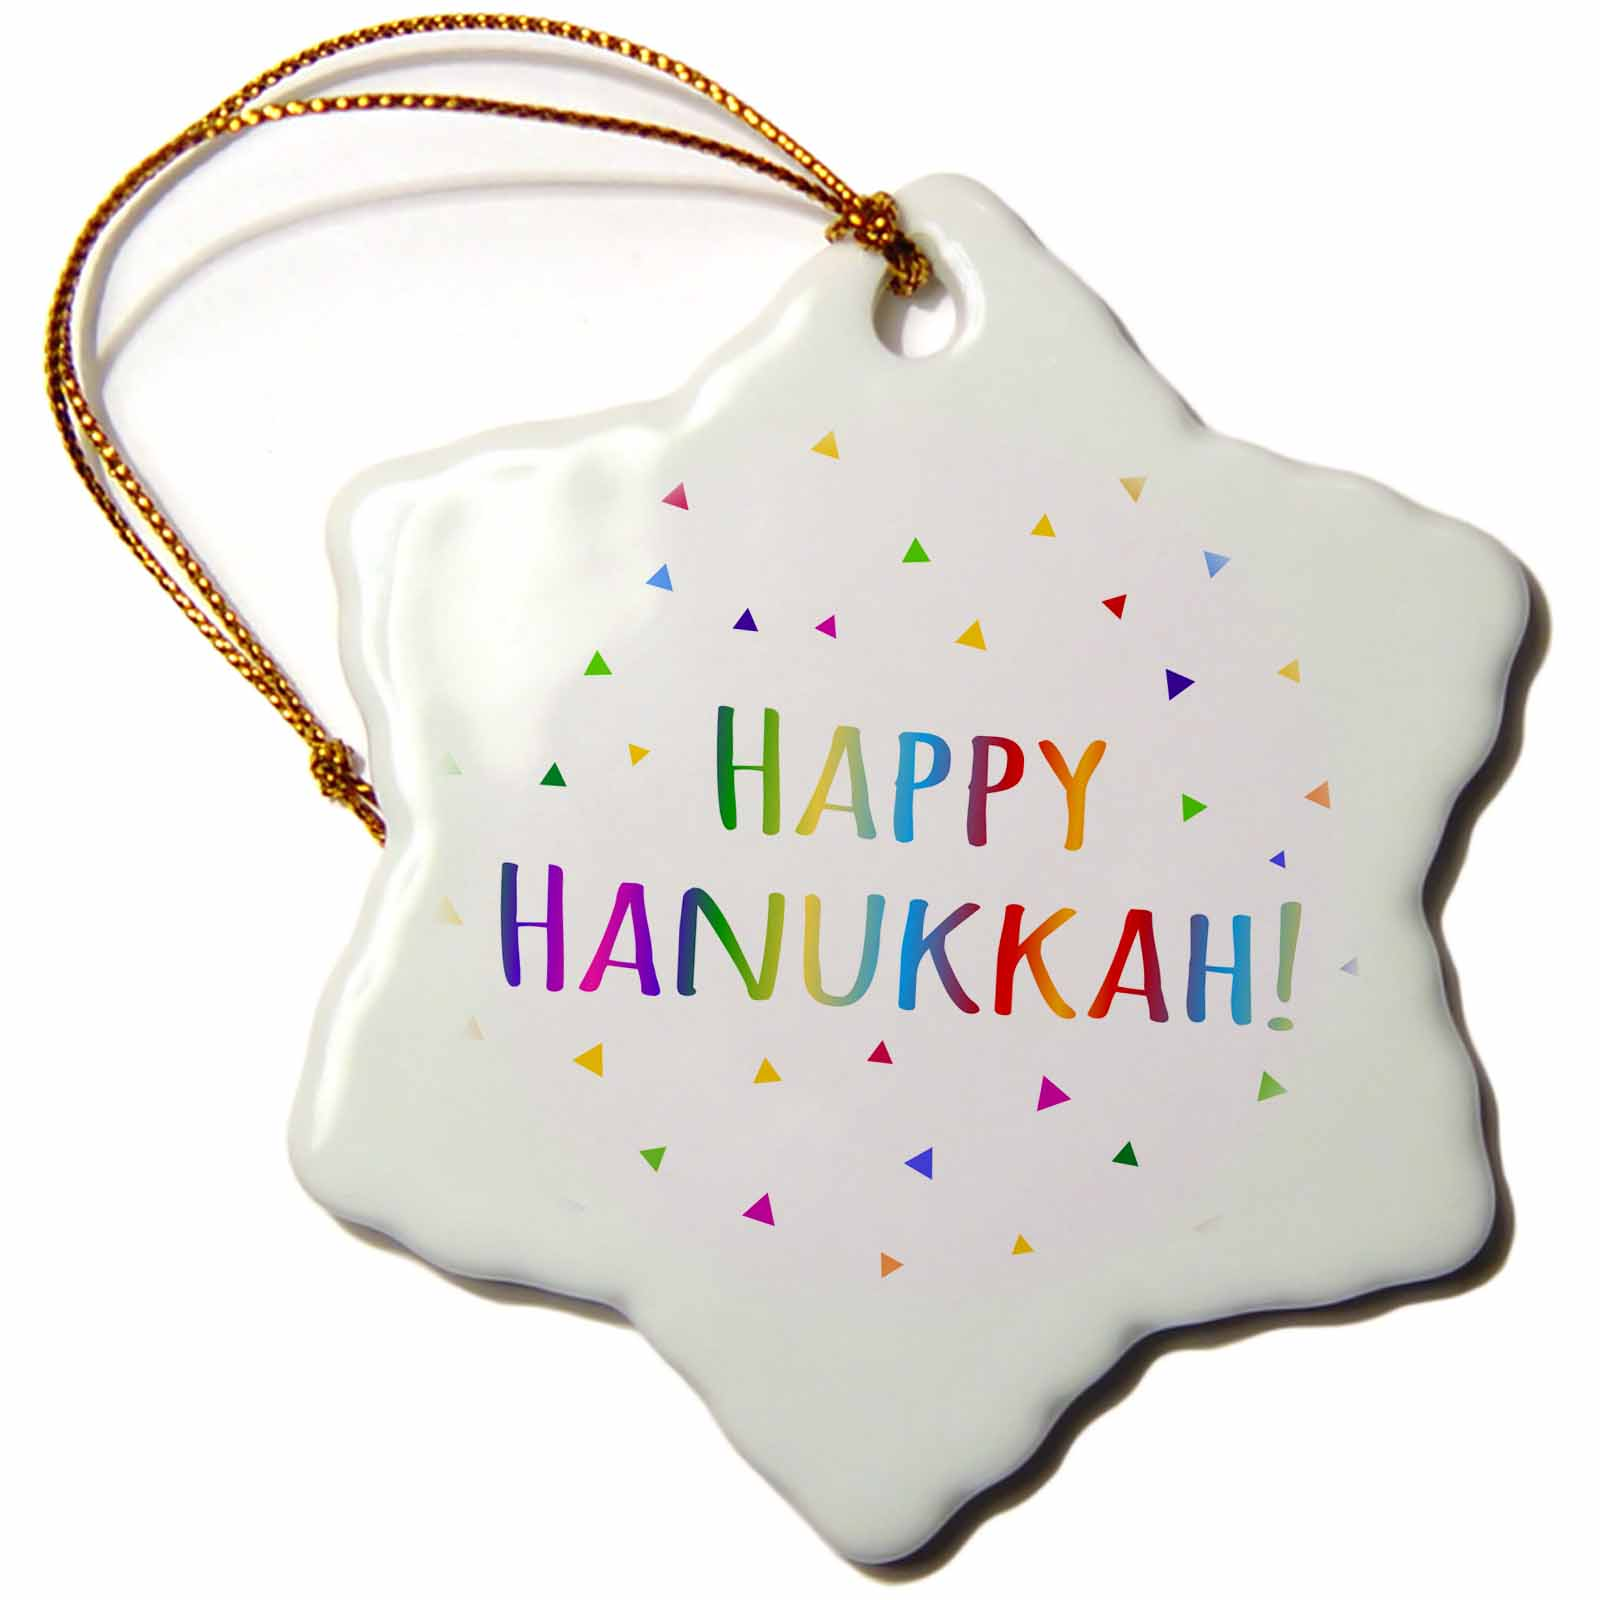 3dRose Happy Hanukkah - Jewish holiday of light - colorful rainbow text, Snowflake Ornament, Porcelain, 3-inch